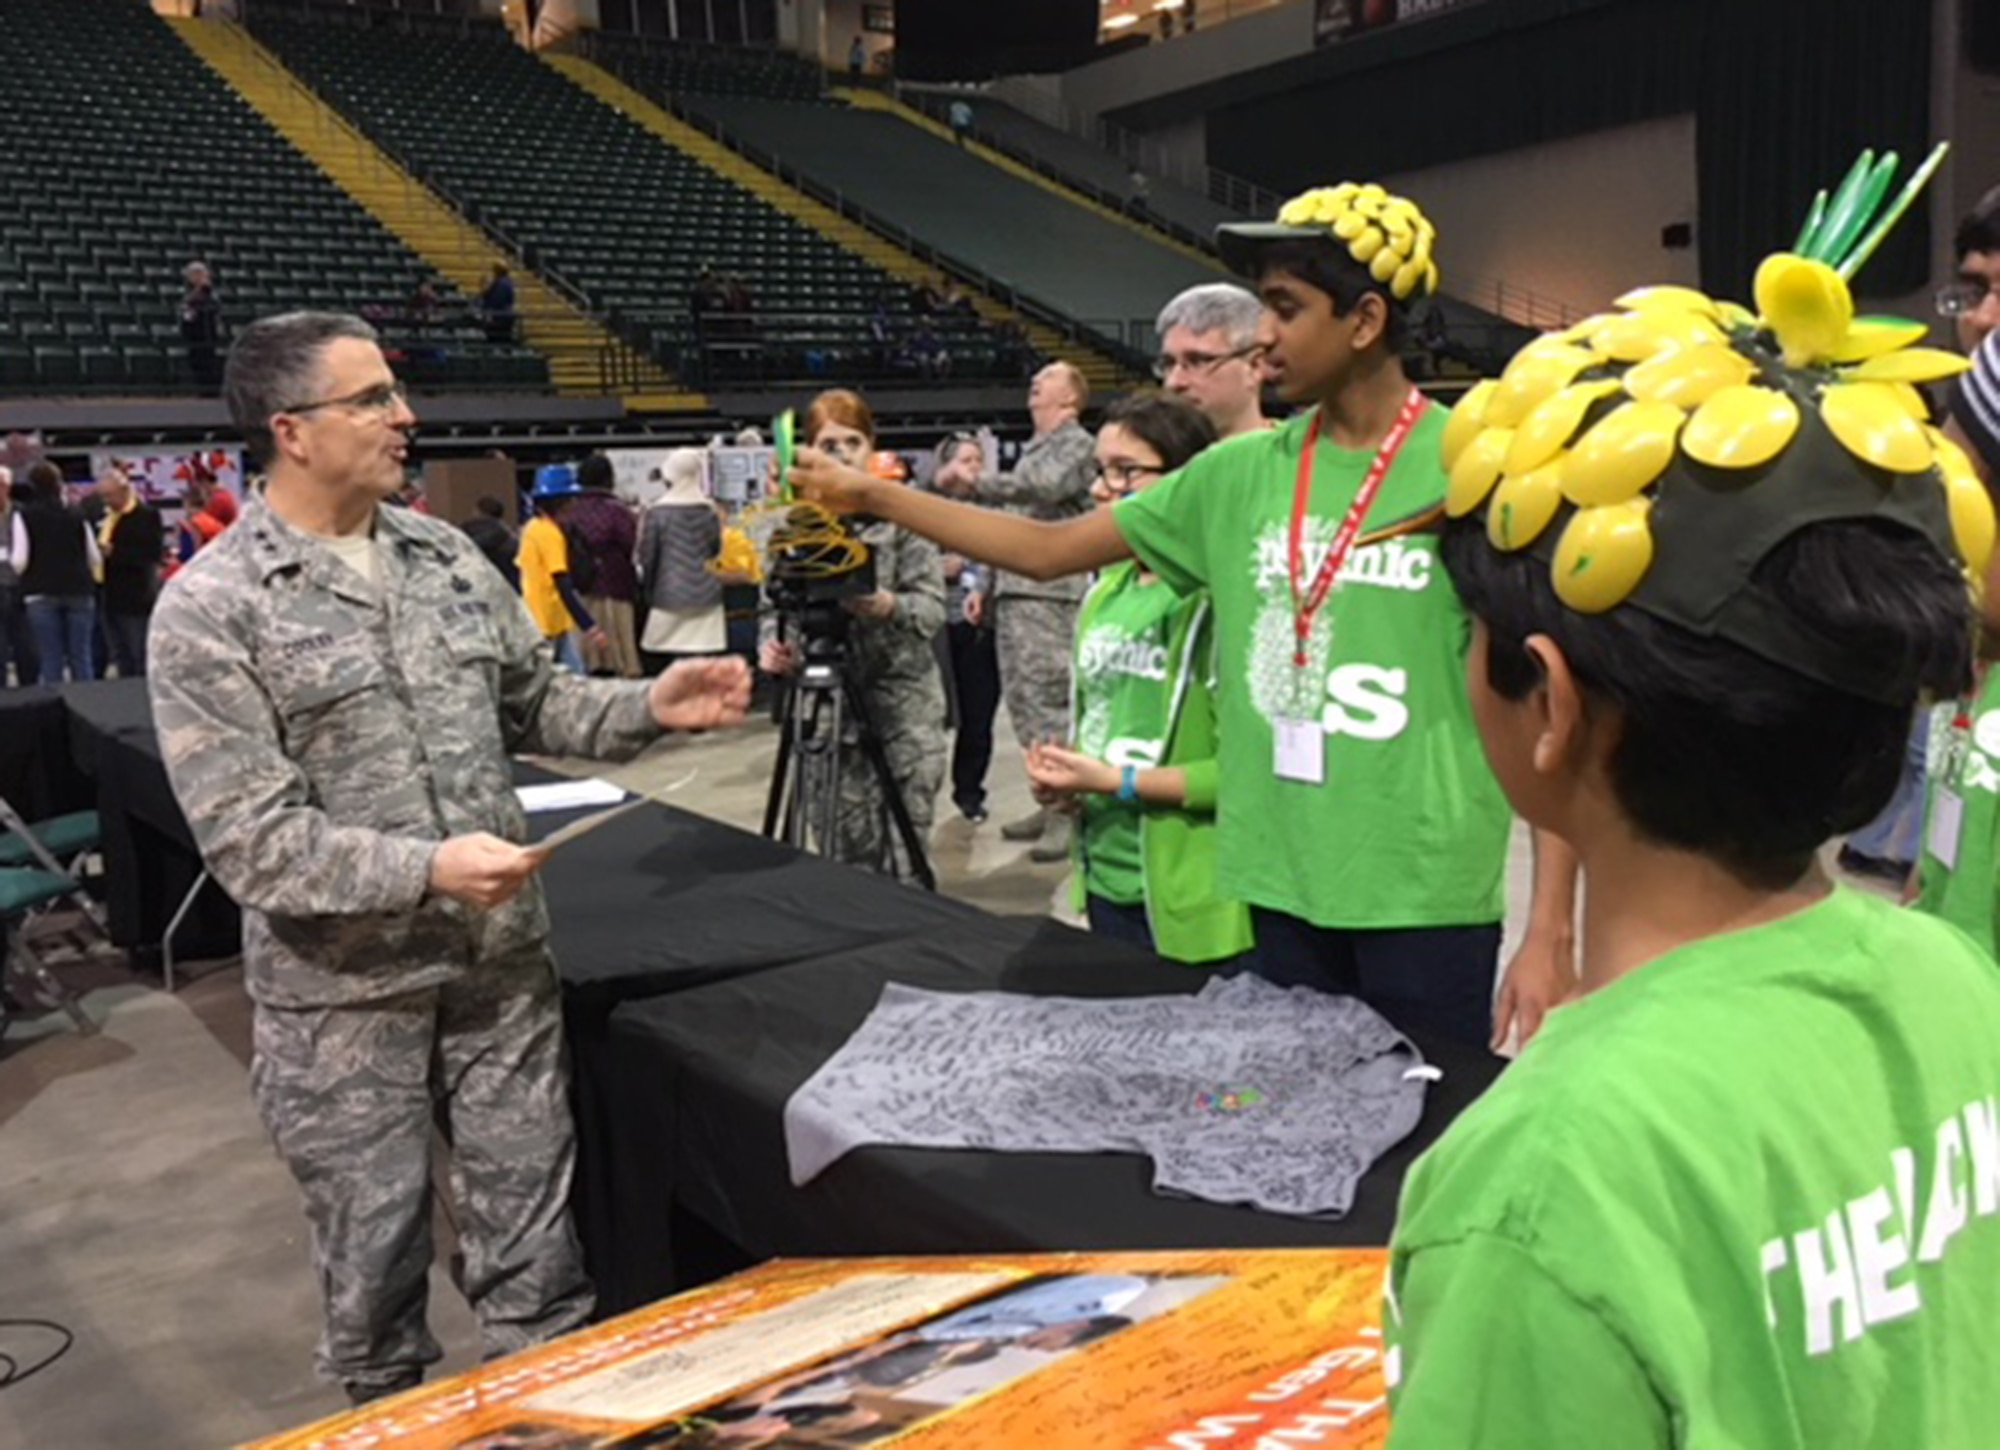 Maj. Gen.William Cooley, Air Force Research Laboratory commander, Wright-Patterson Air Force Base, explains how important it is for students to pursue STEM-related careers during the FIRST LEGO League Ohio Championship Tournament held Feb. 4 at Wright State University. (U.S.Air Force photo/Marie Vanover)